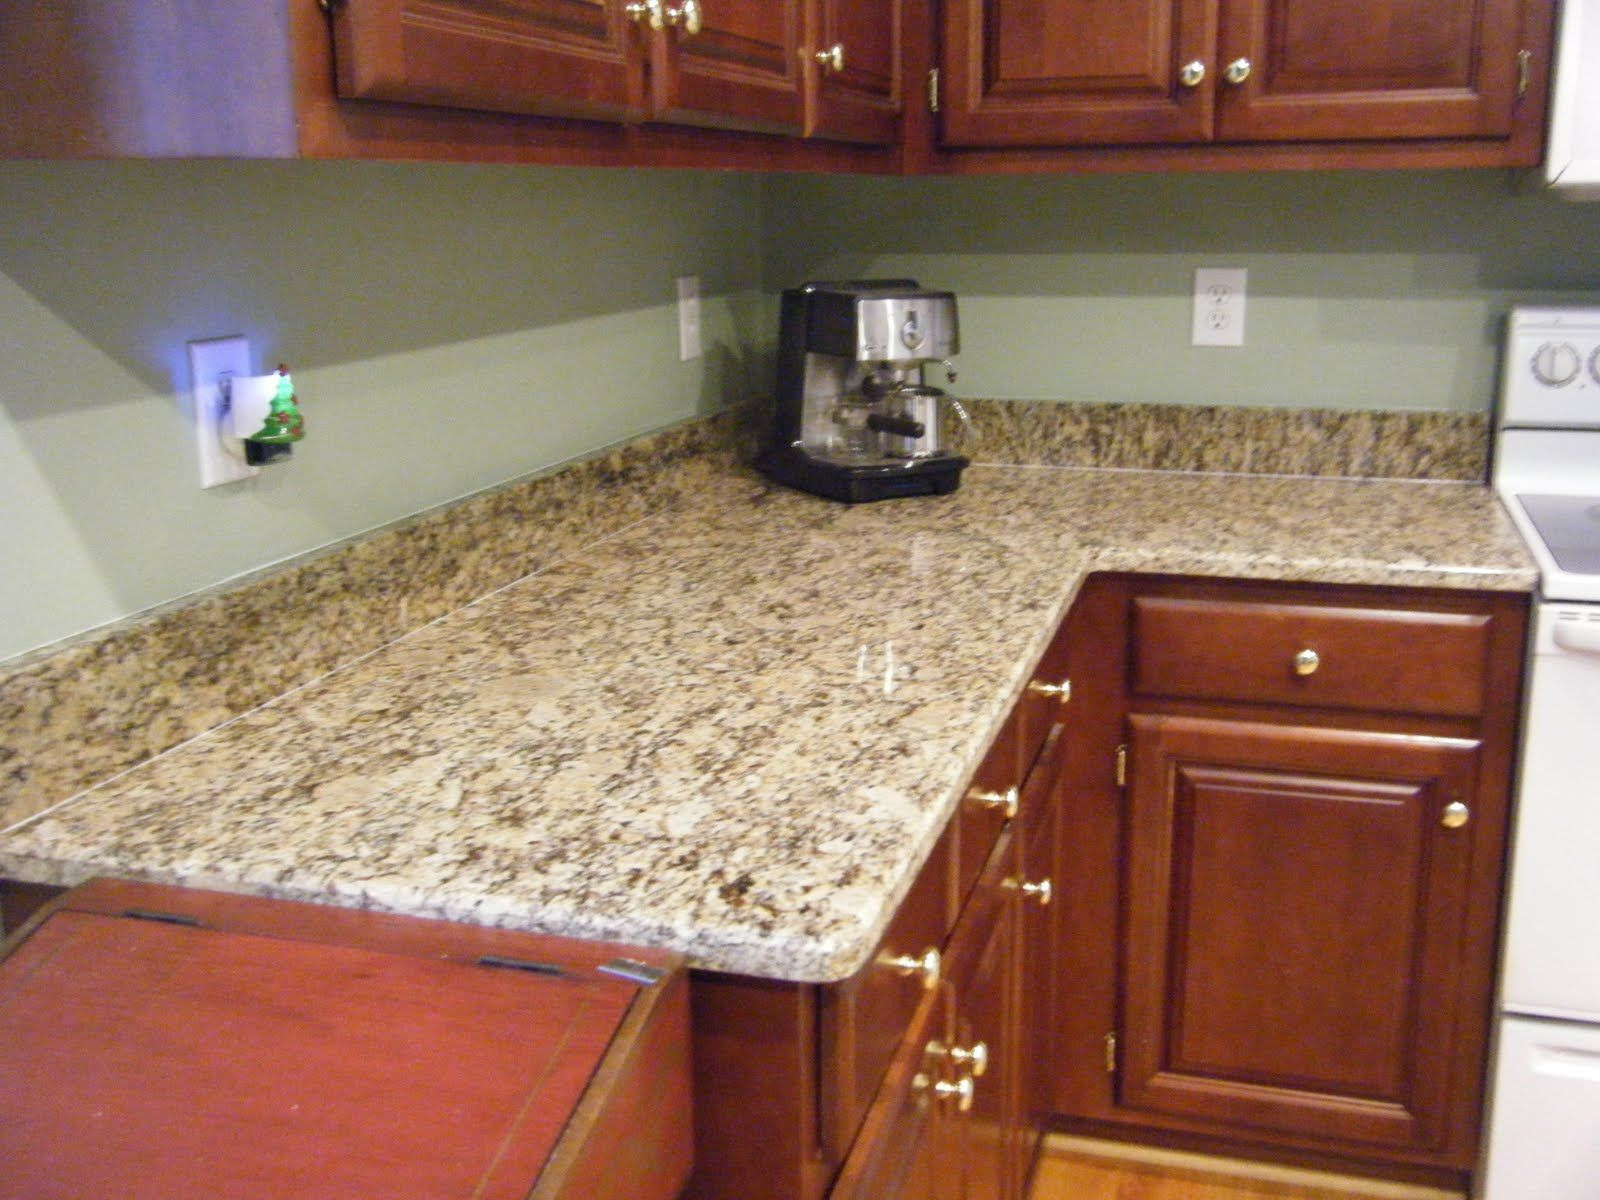 Santa Cecilia Granite Kitchen Saint Cecilia Granite Countertops